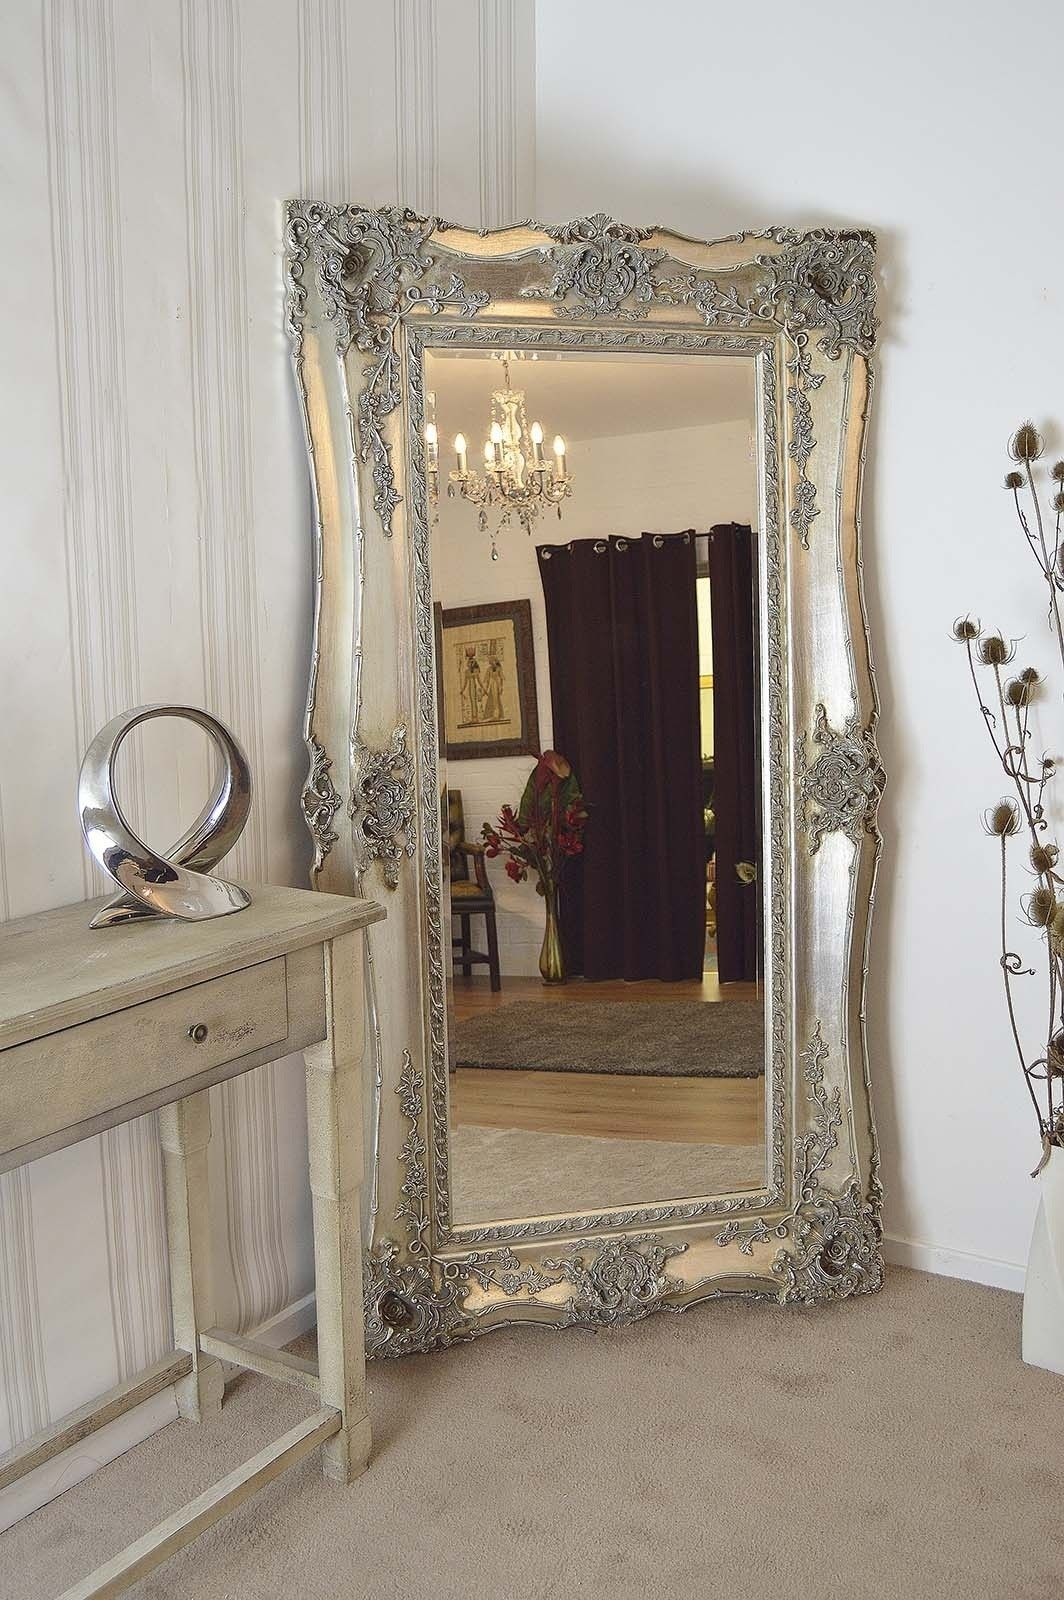 Large Silver Ornate Wall Mirror Large Wall Mirror Mirror Wall Living Room Living Room Mirrors #silver #mirror #living #room